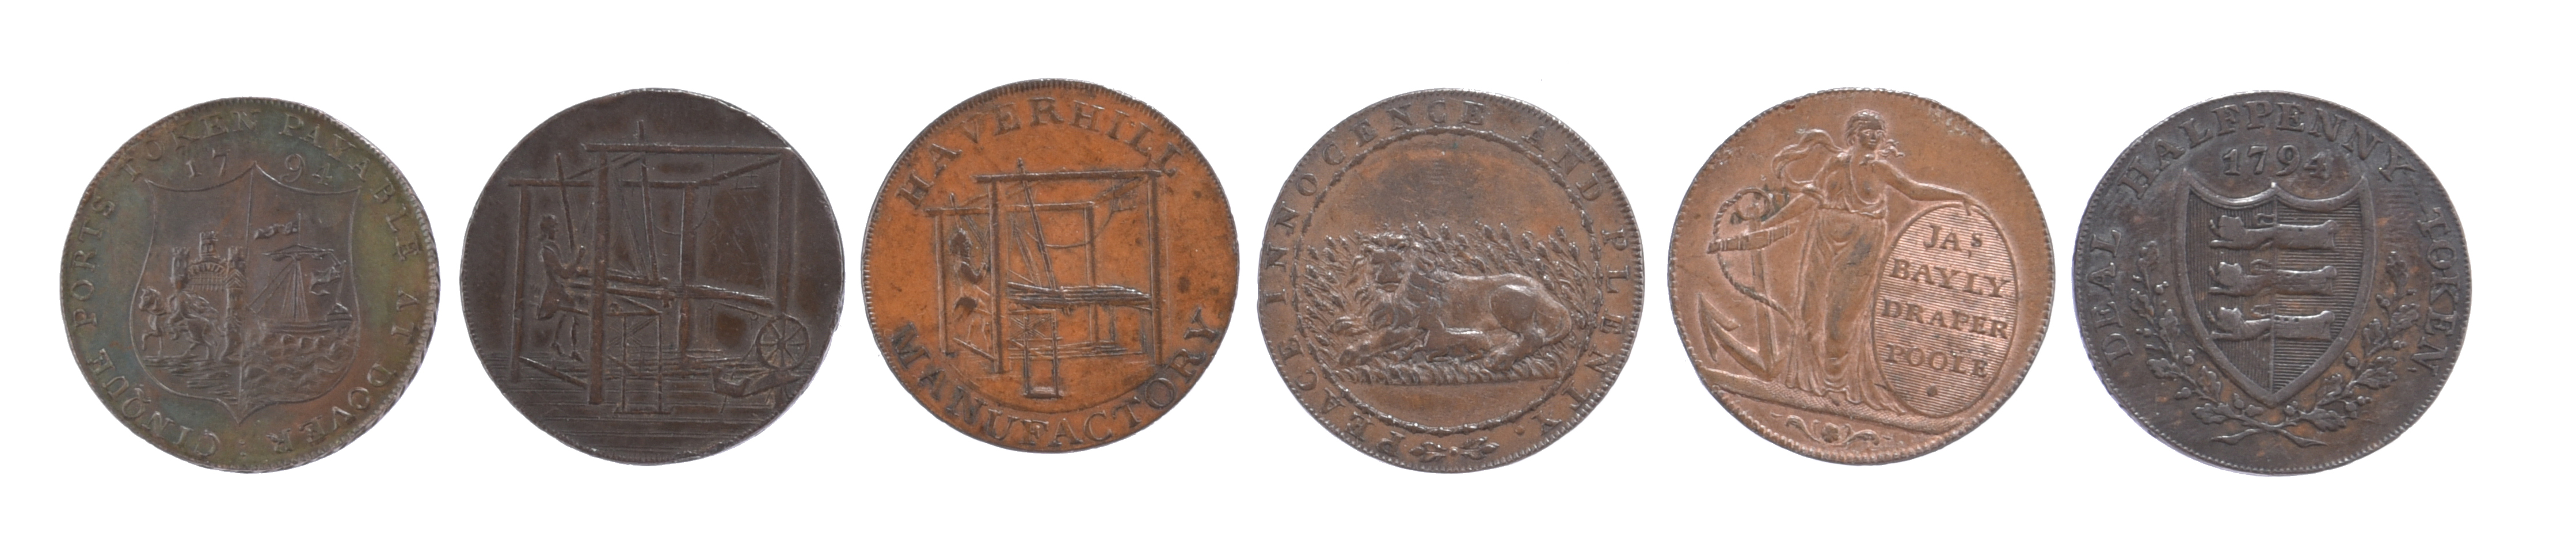 18th century tokens: Kent: Dover halfpenny 1794, William Pitt, rev. Cinque Ports arms, edge AT - Image 2 of 2